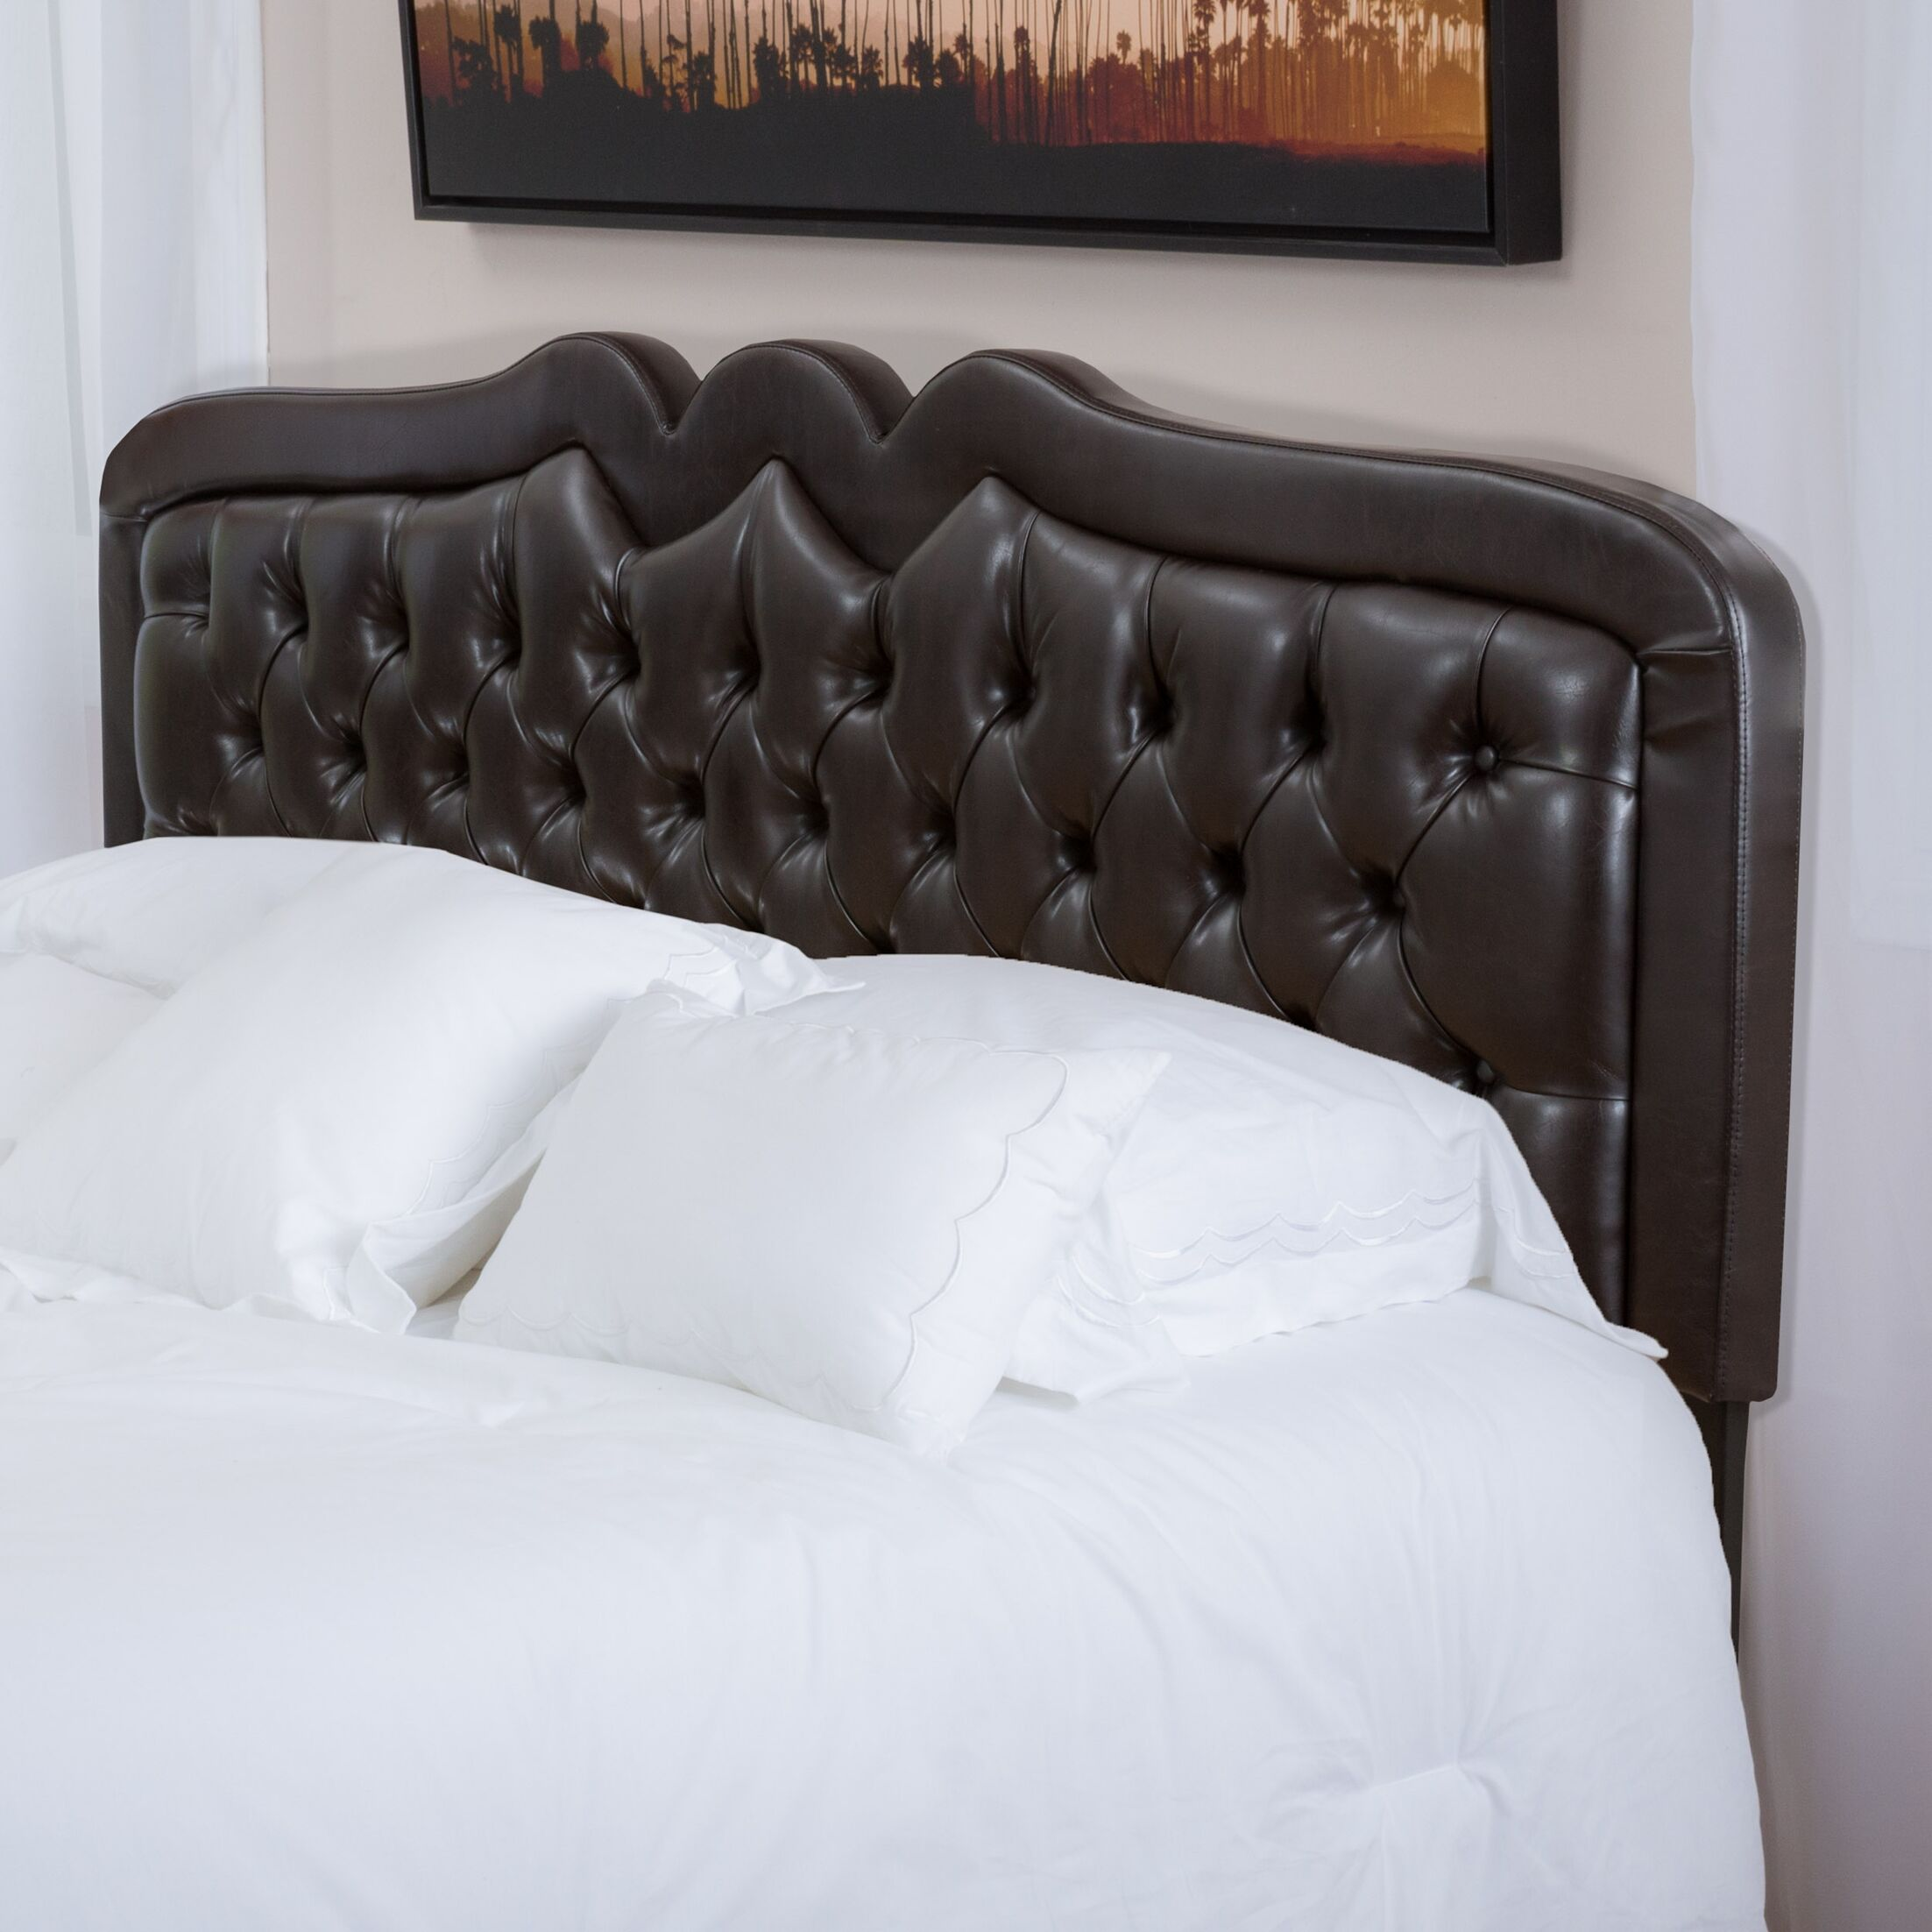 King Street King Panel Headboard Size: King / California King